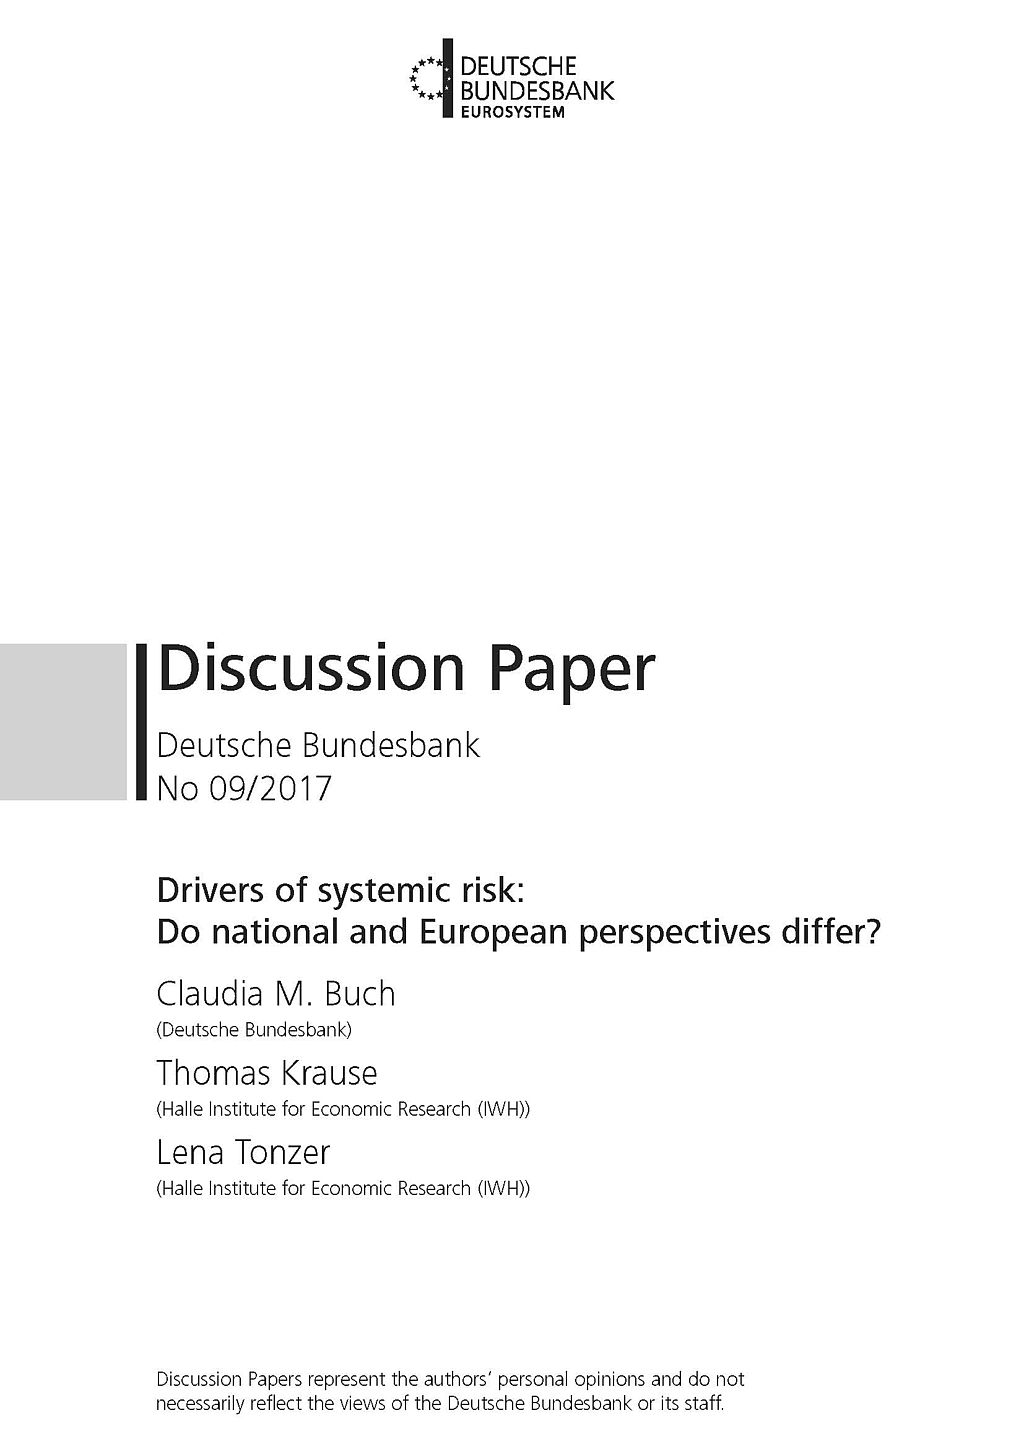 cover_Deutsche-Bundesbank-Discussion-Paper_2017-09.jpg